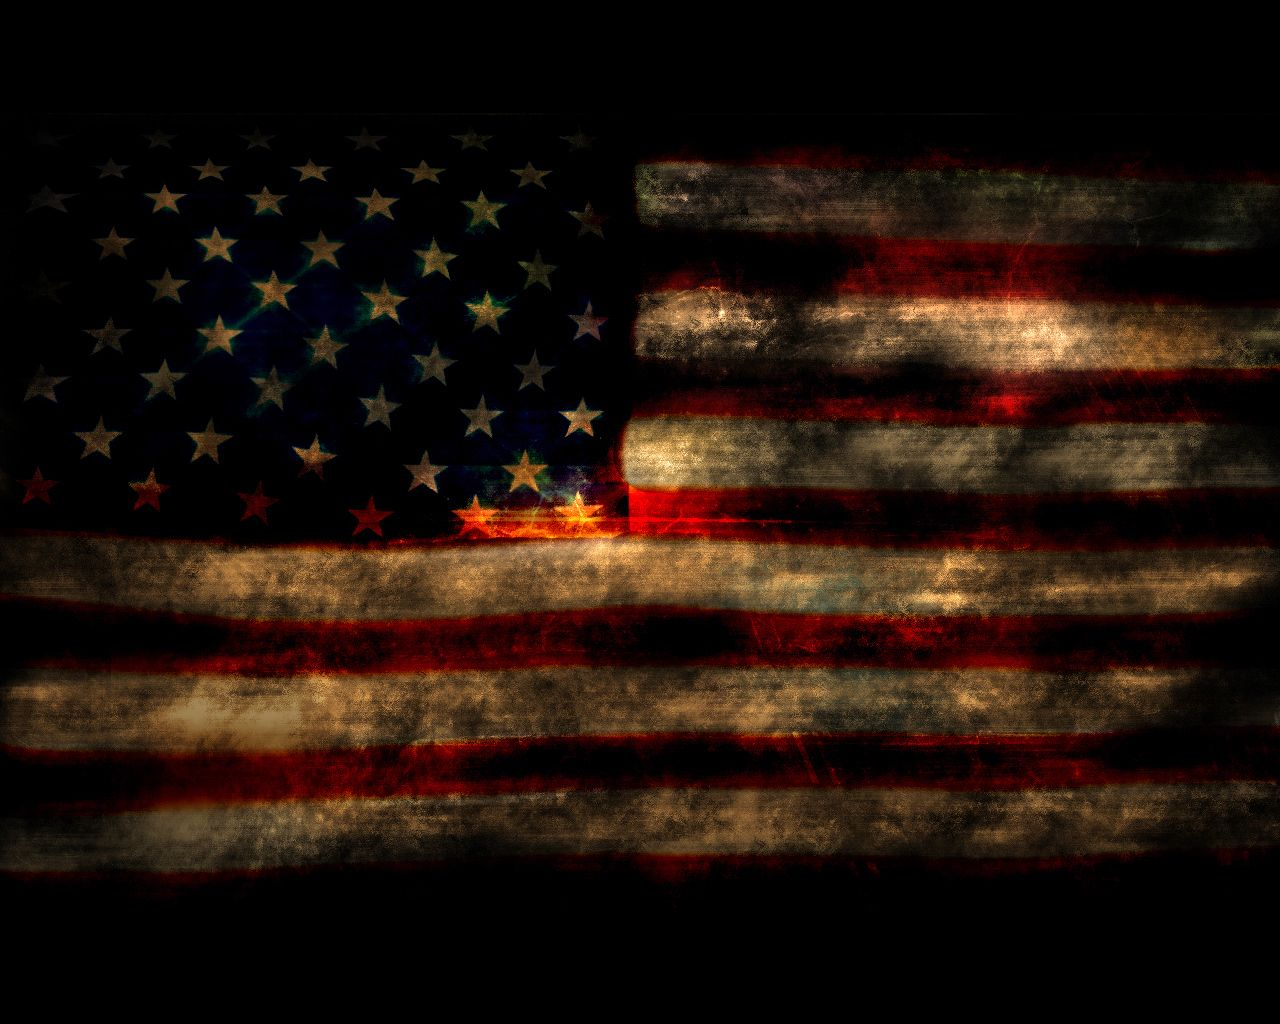 Hd wallpaper usa flag - Find This Pin And More On Hd Wallpapers Usa Flag